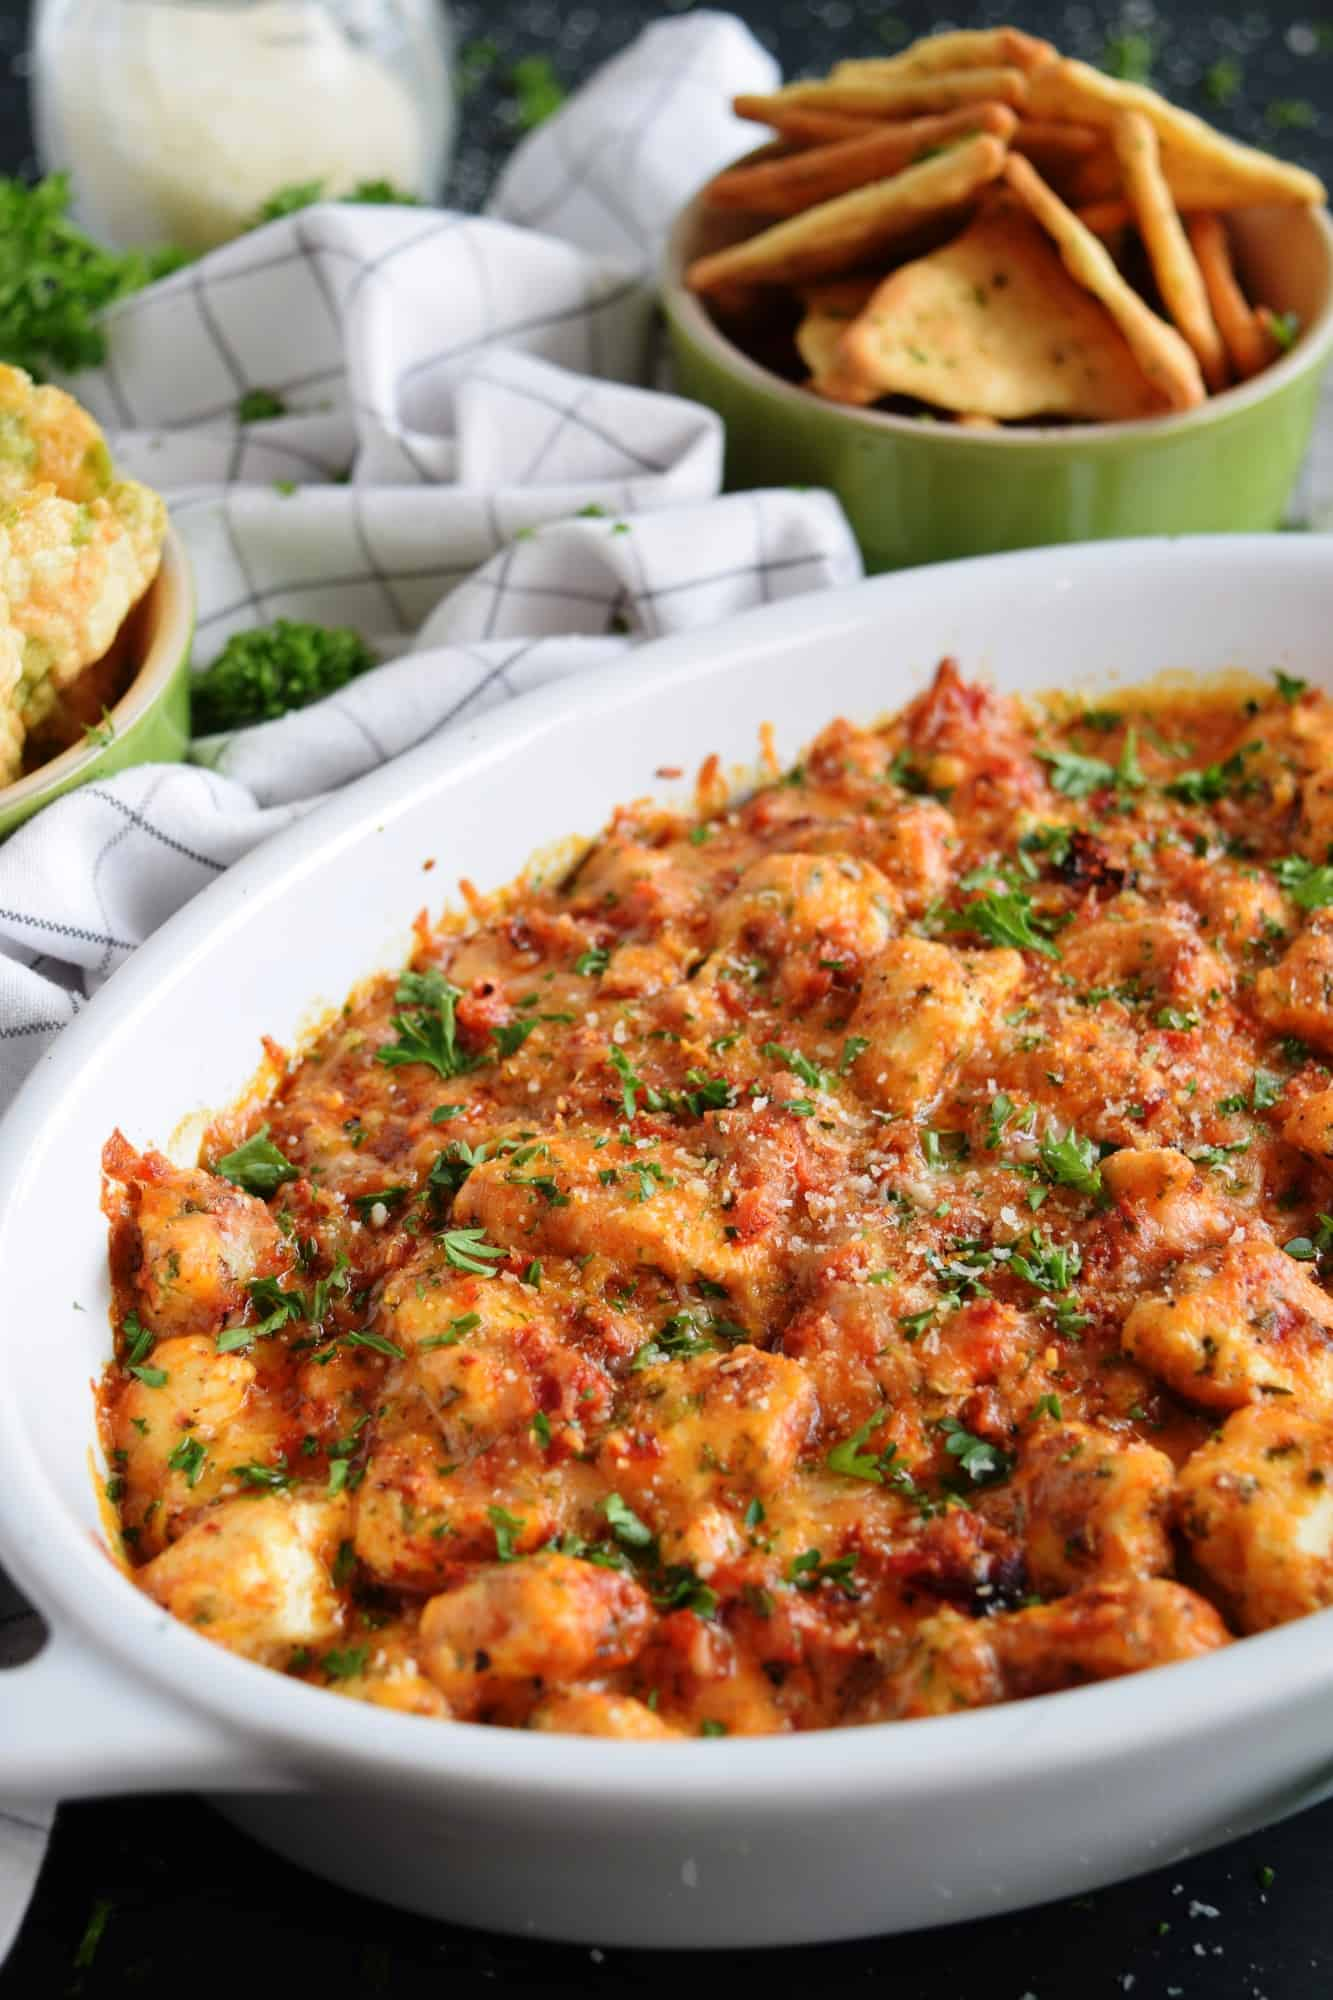 Hot Four Cheese Roasted Red Pepper Dip